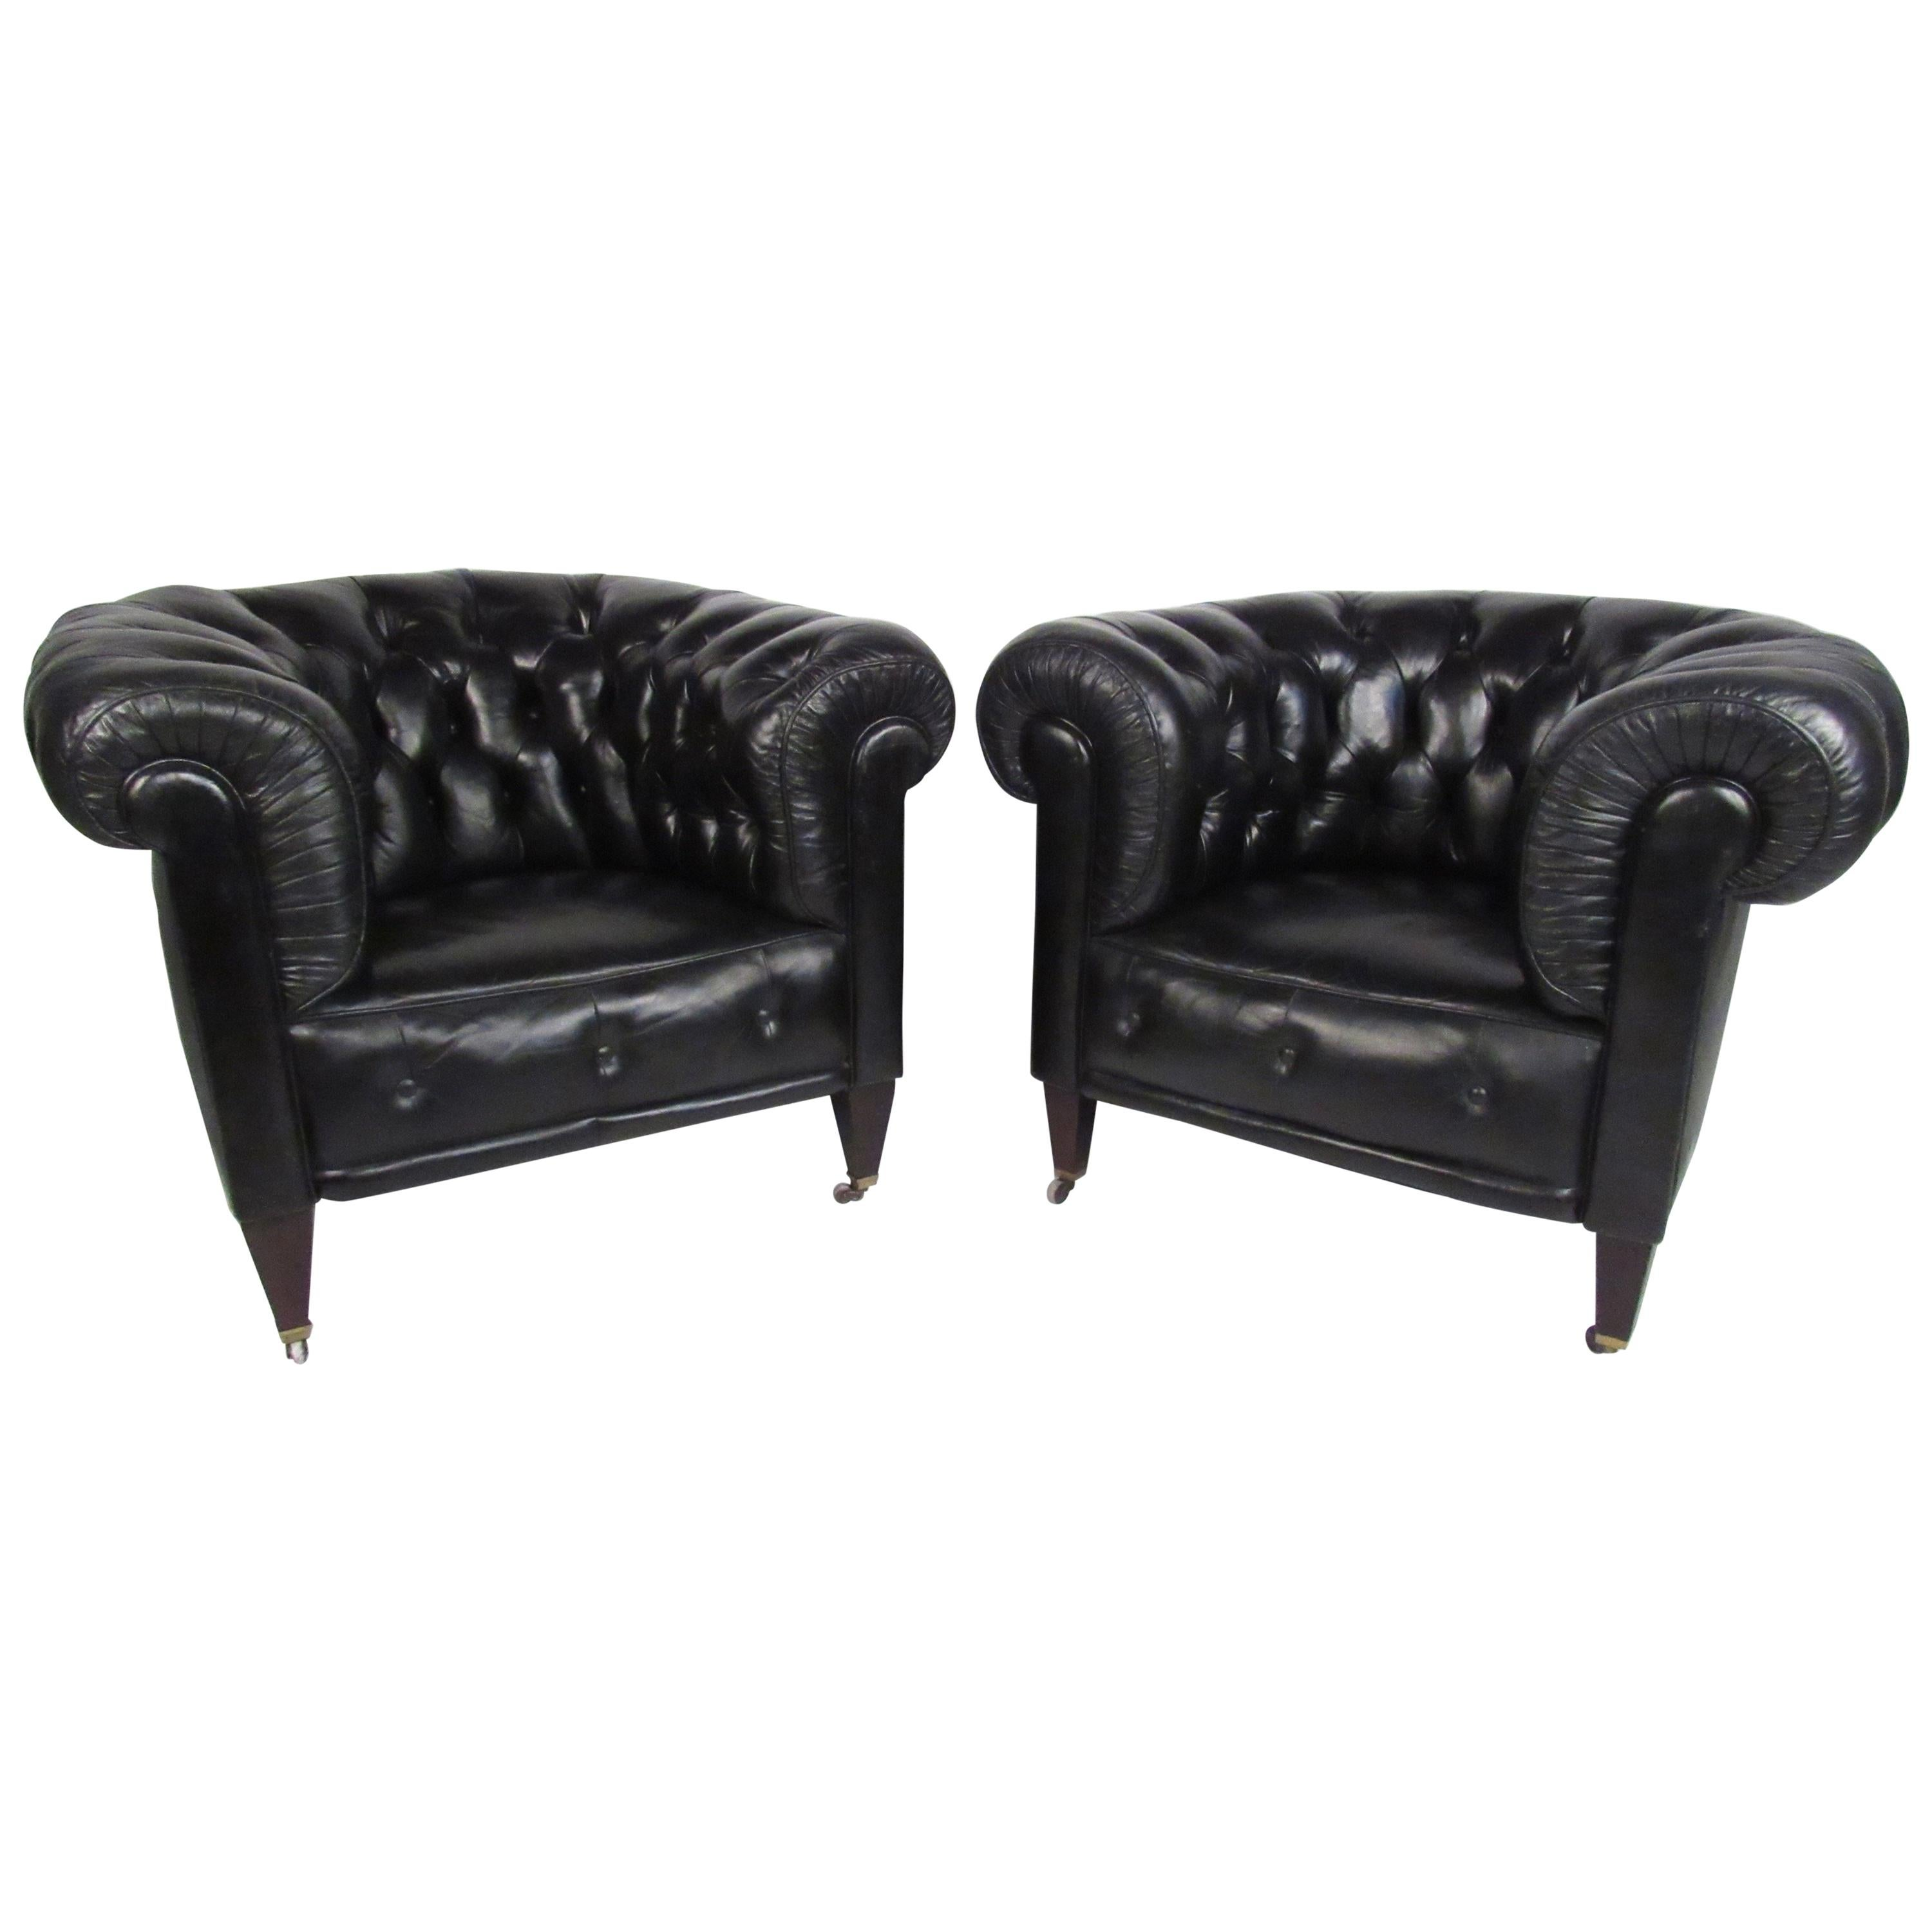 Pair of Vintage Leather Chesterfield Club Chairs